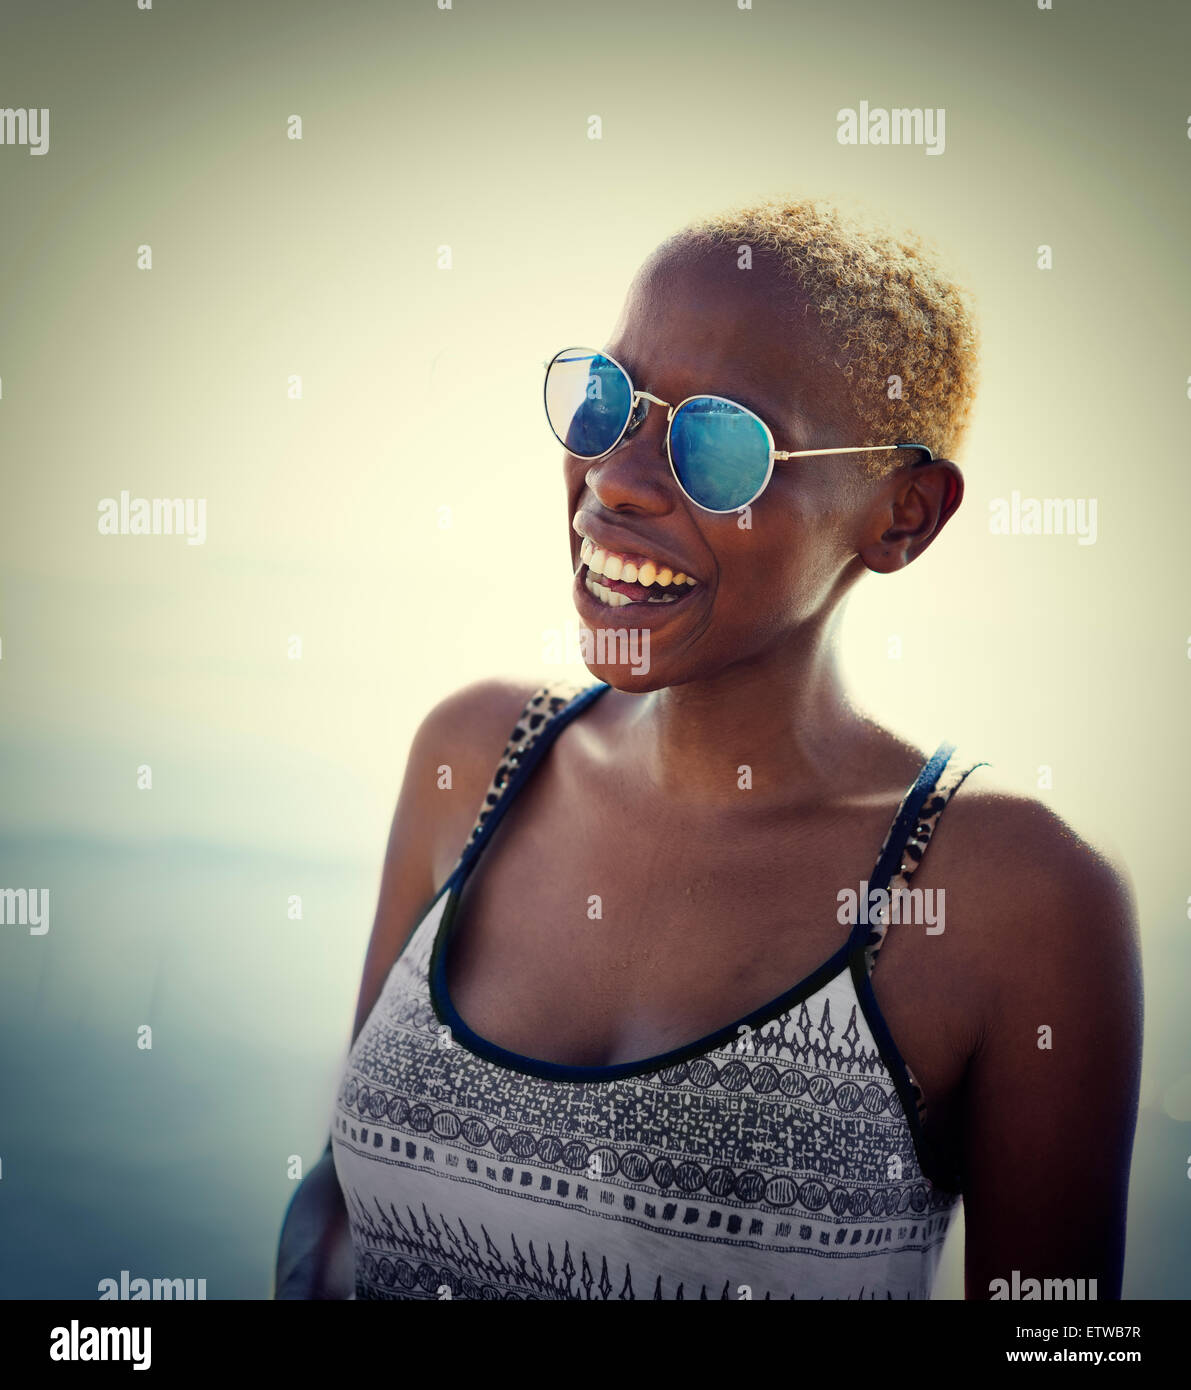 African Woman Lady Summer Beach Smiling Concept - Stock Image